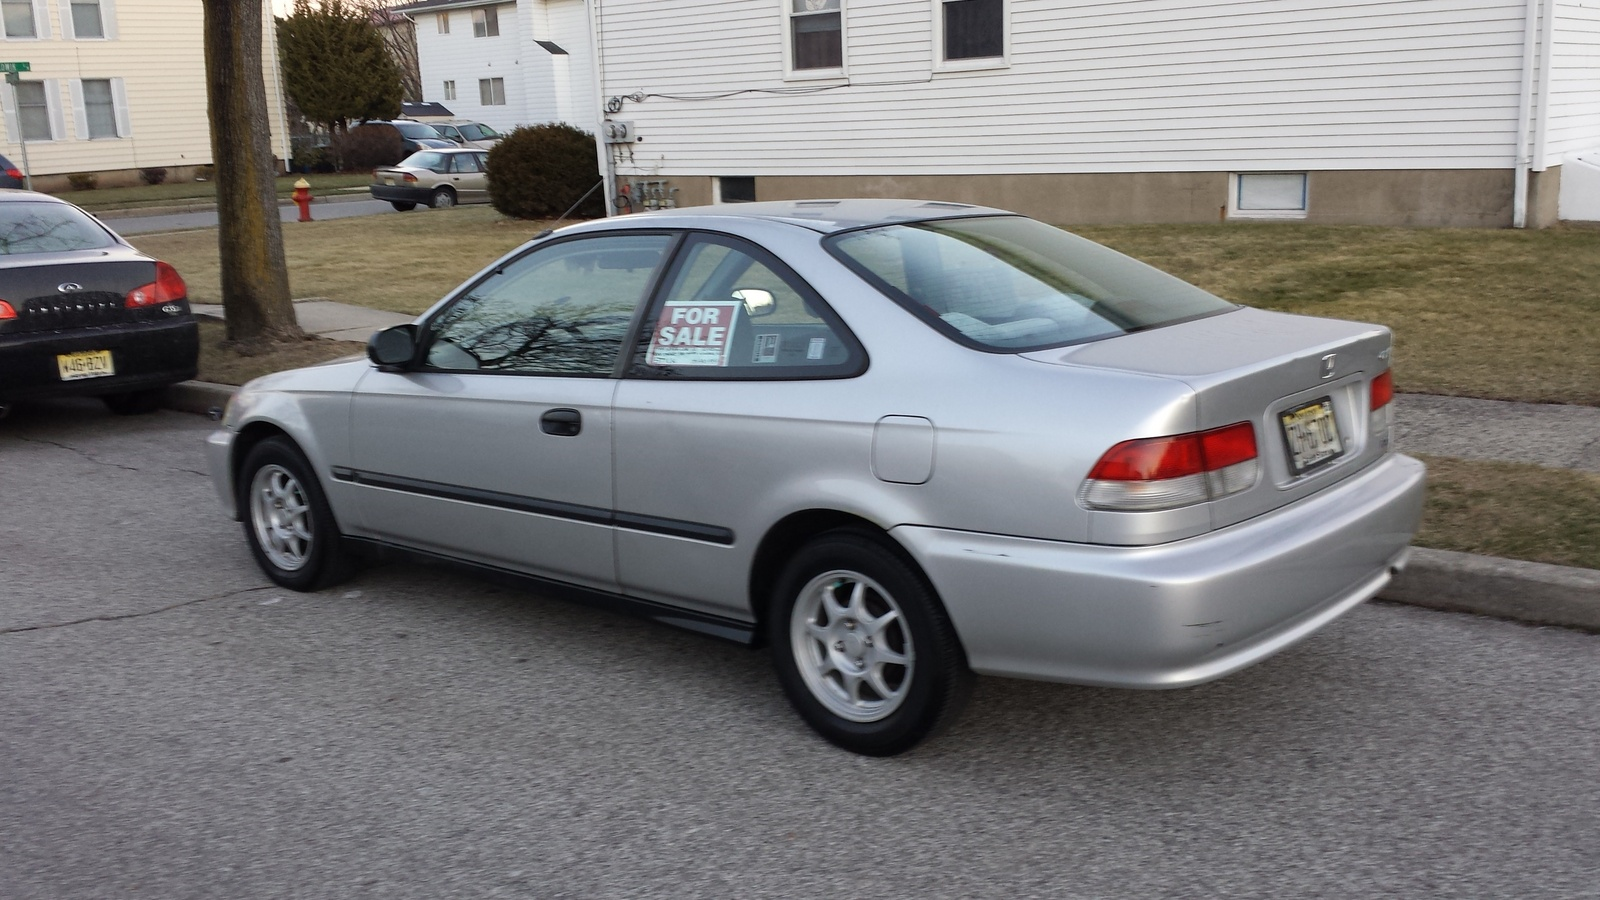 Picture of 1999 honda civic hx coupe exterior